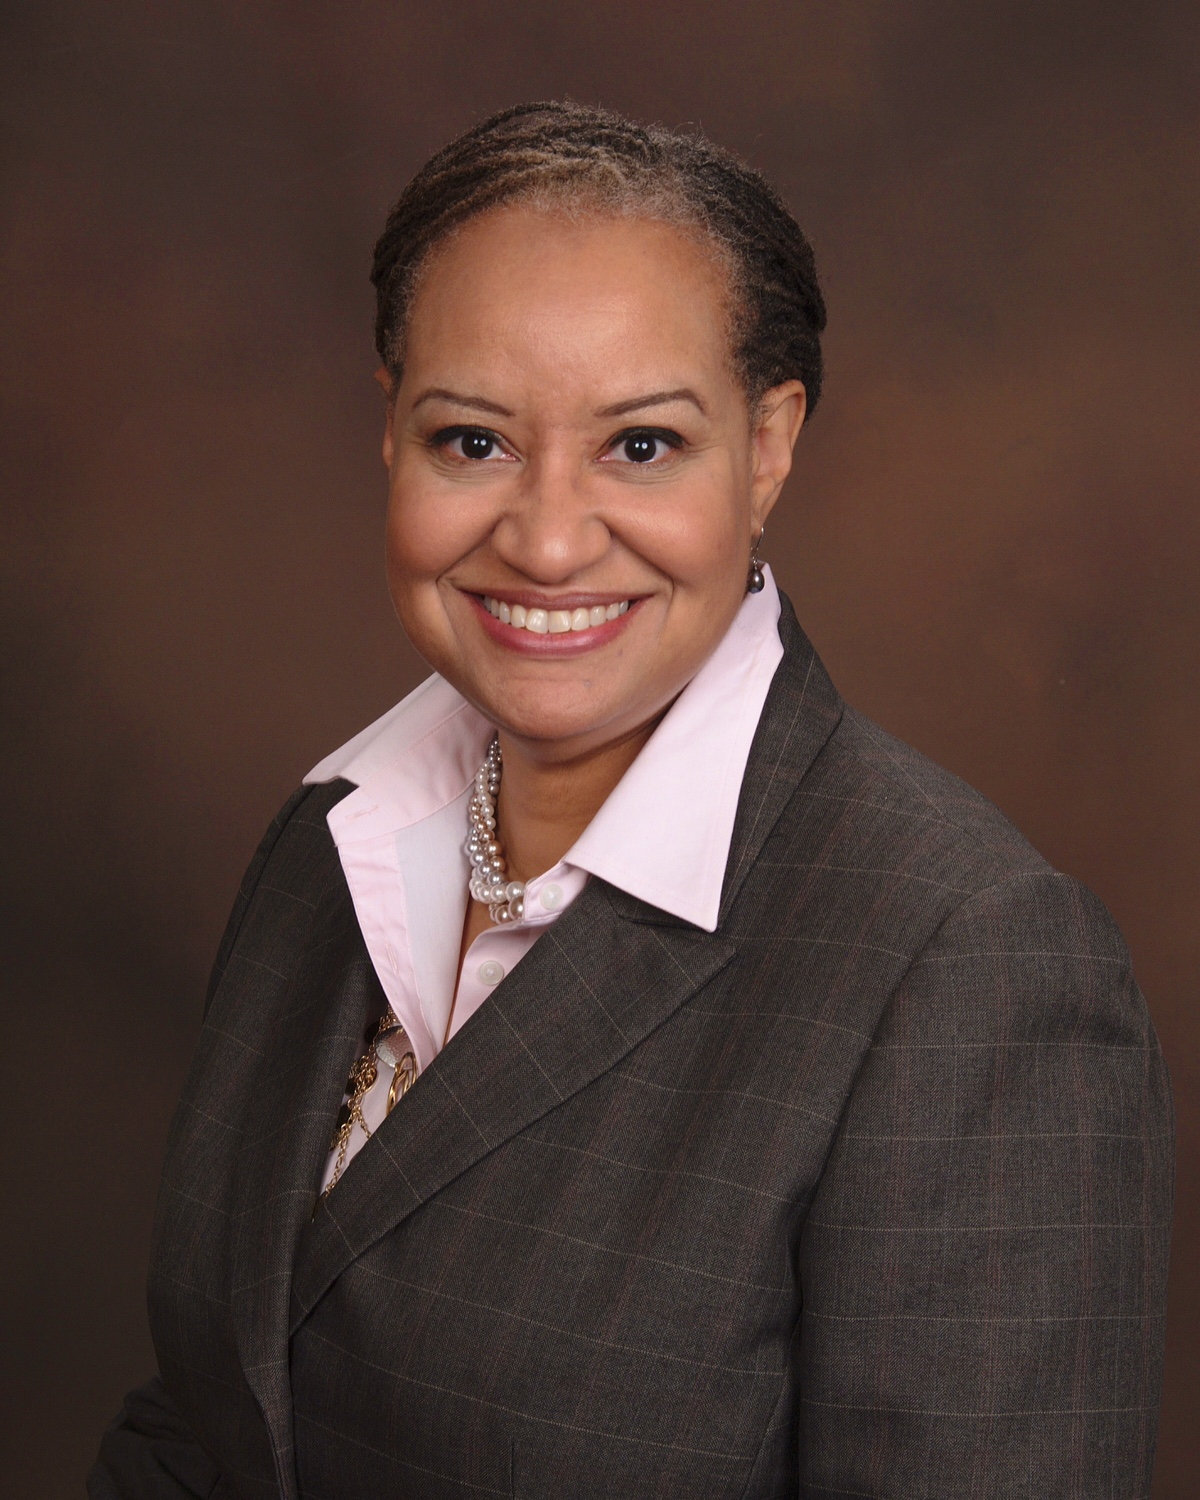 Medical College of Wisconsin Names C. Greer Jordan, MBA, PhD as Chief Diversity and Inclusion Officer